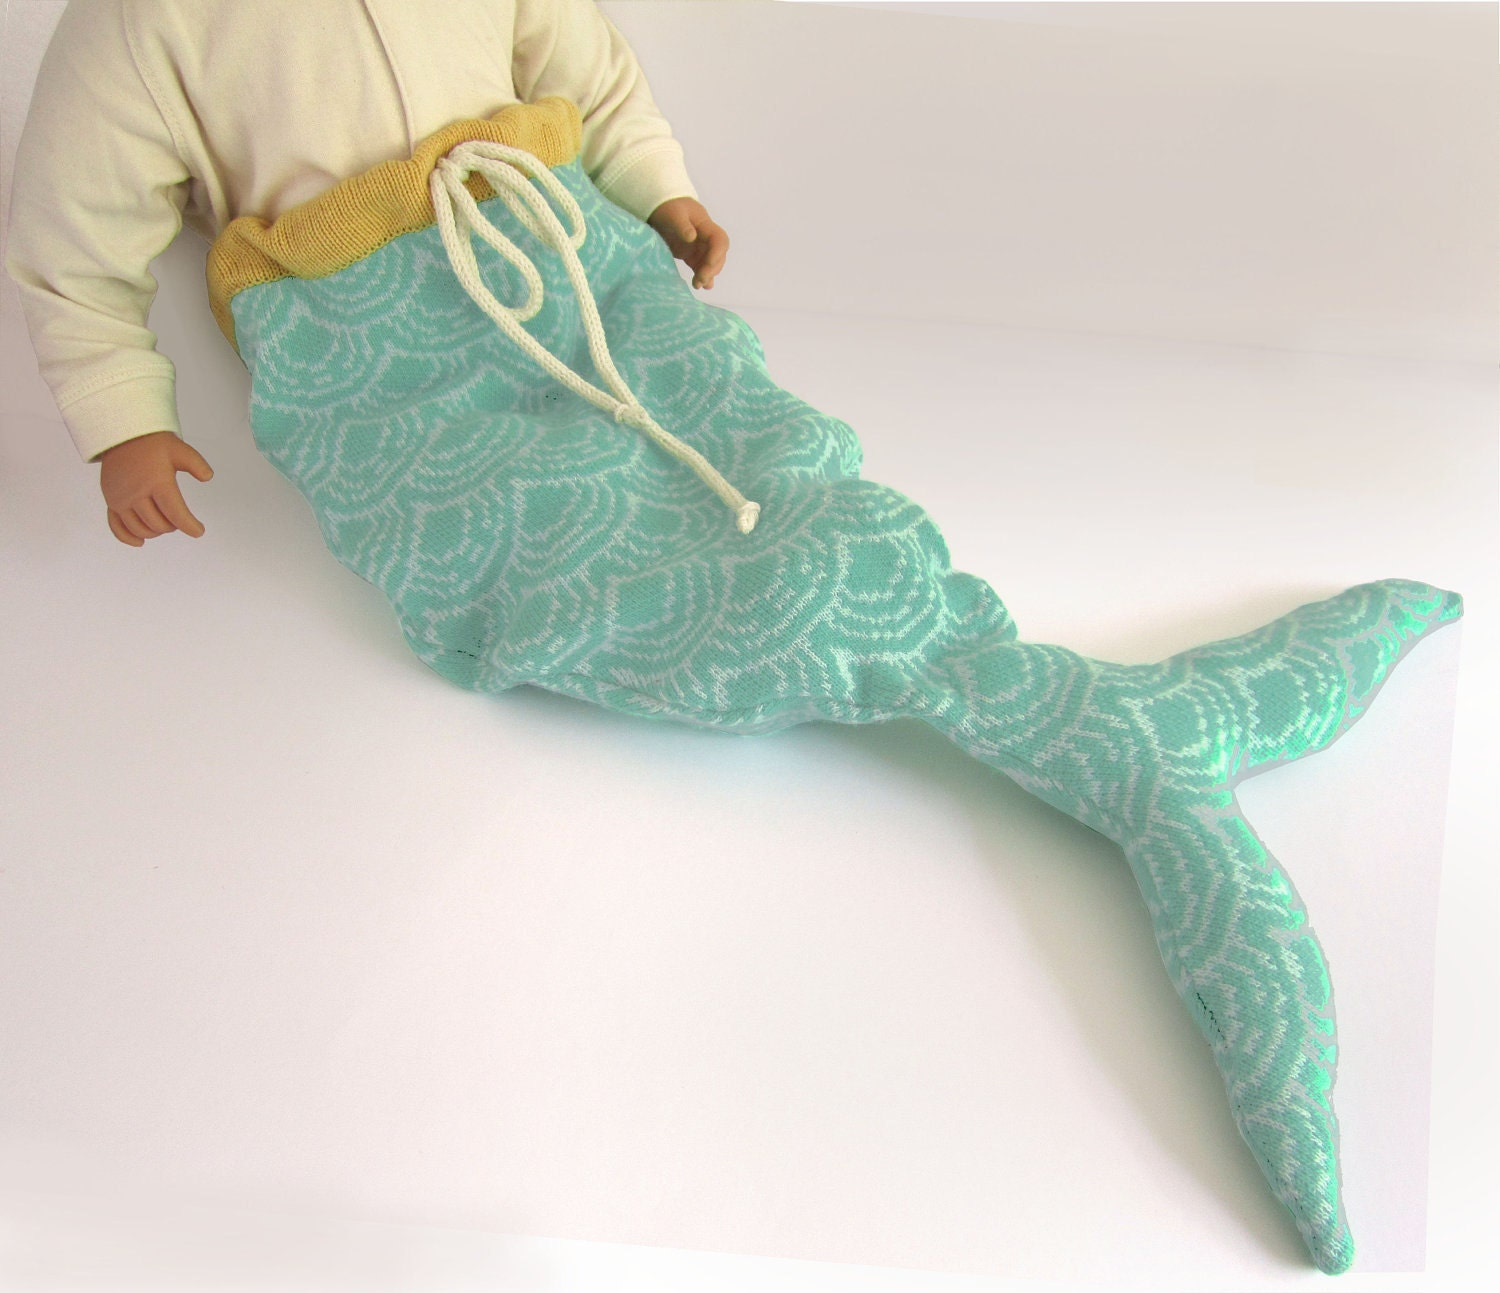 Knitting Pattern For Baby Mermaid Outfit : Mermaid Tail Baby Costume Pale Print by TheMiniatureKnitShop